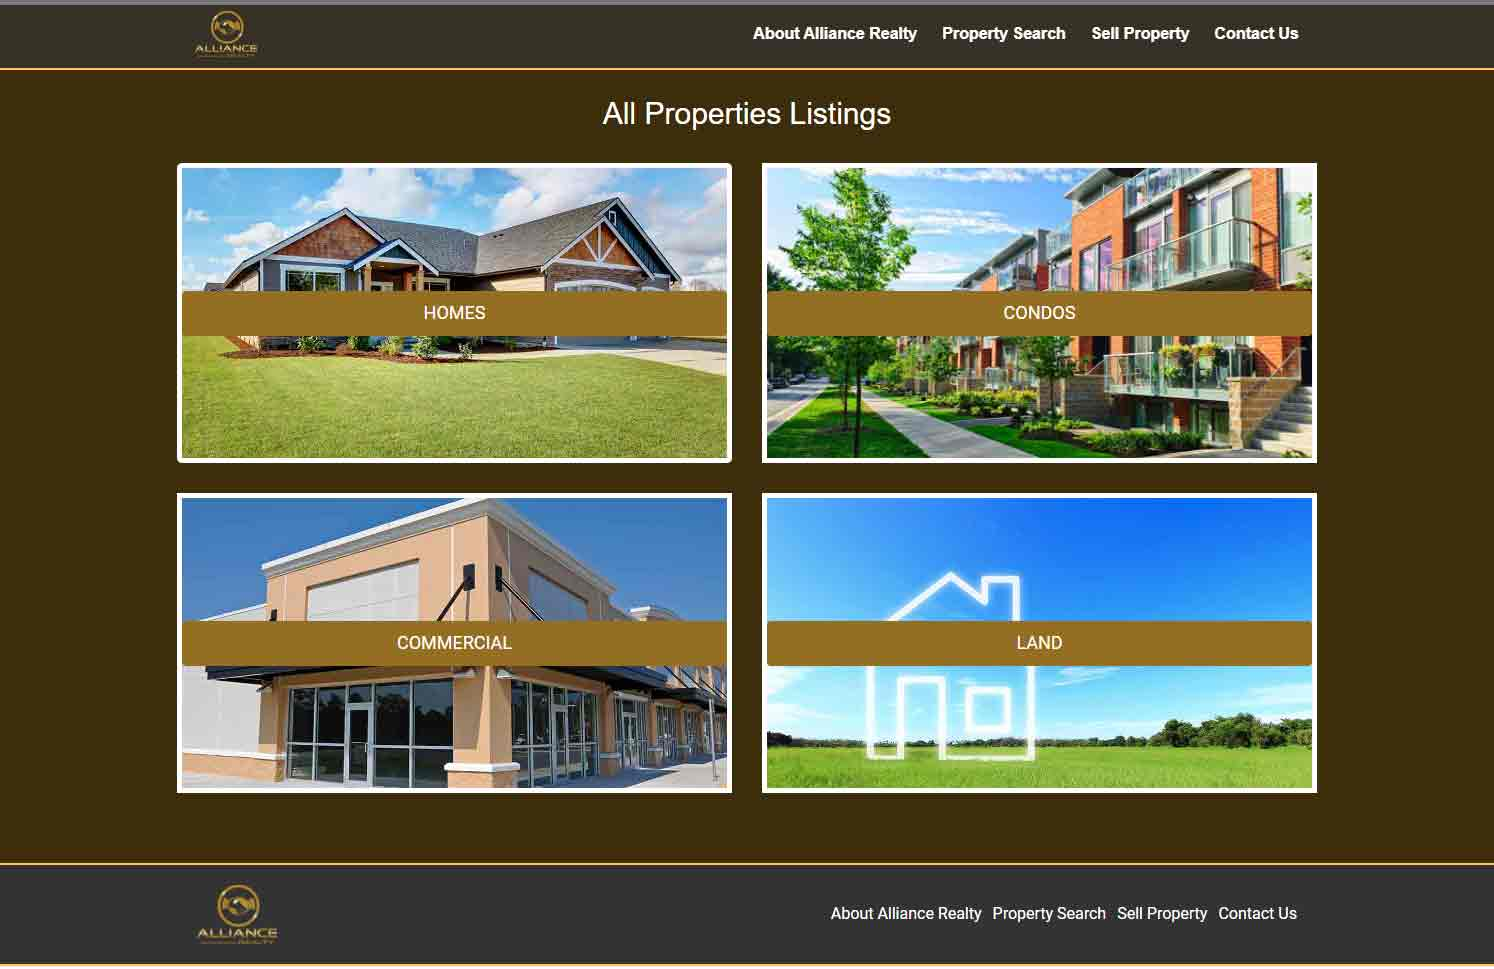 Alliance Realty Image for Solution Section